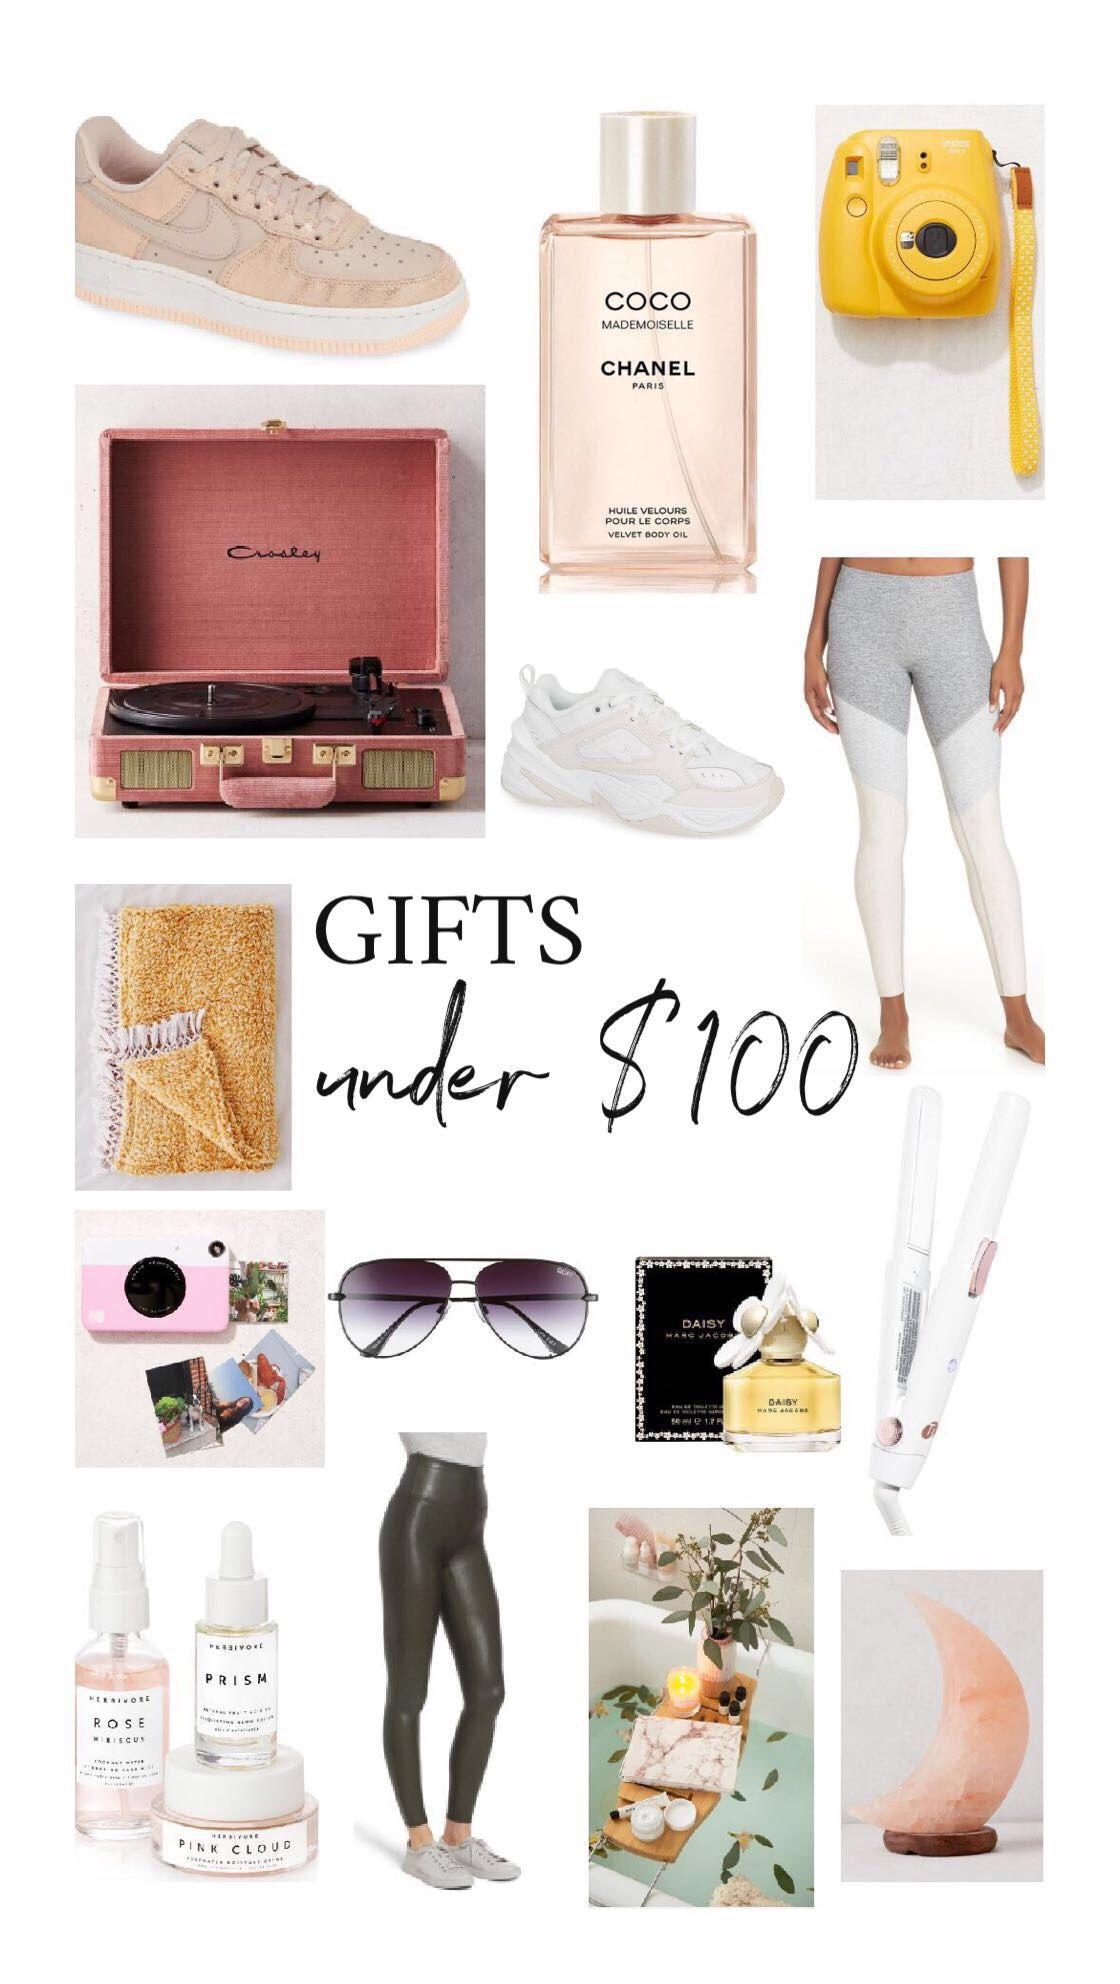 GIFTS FOR HER – UNDER $100